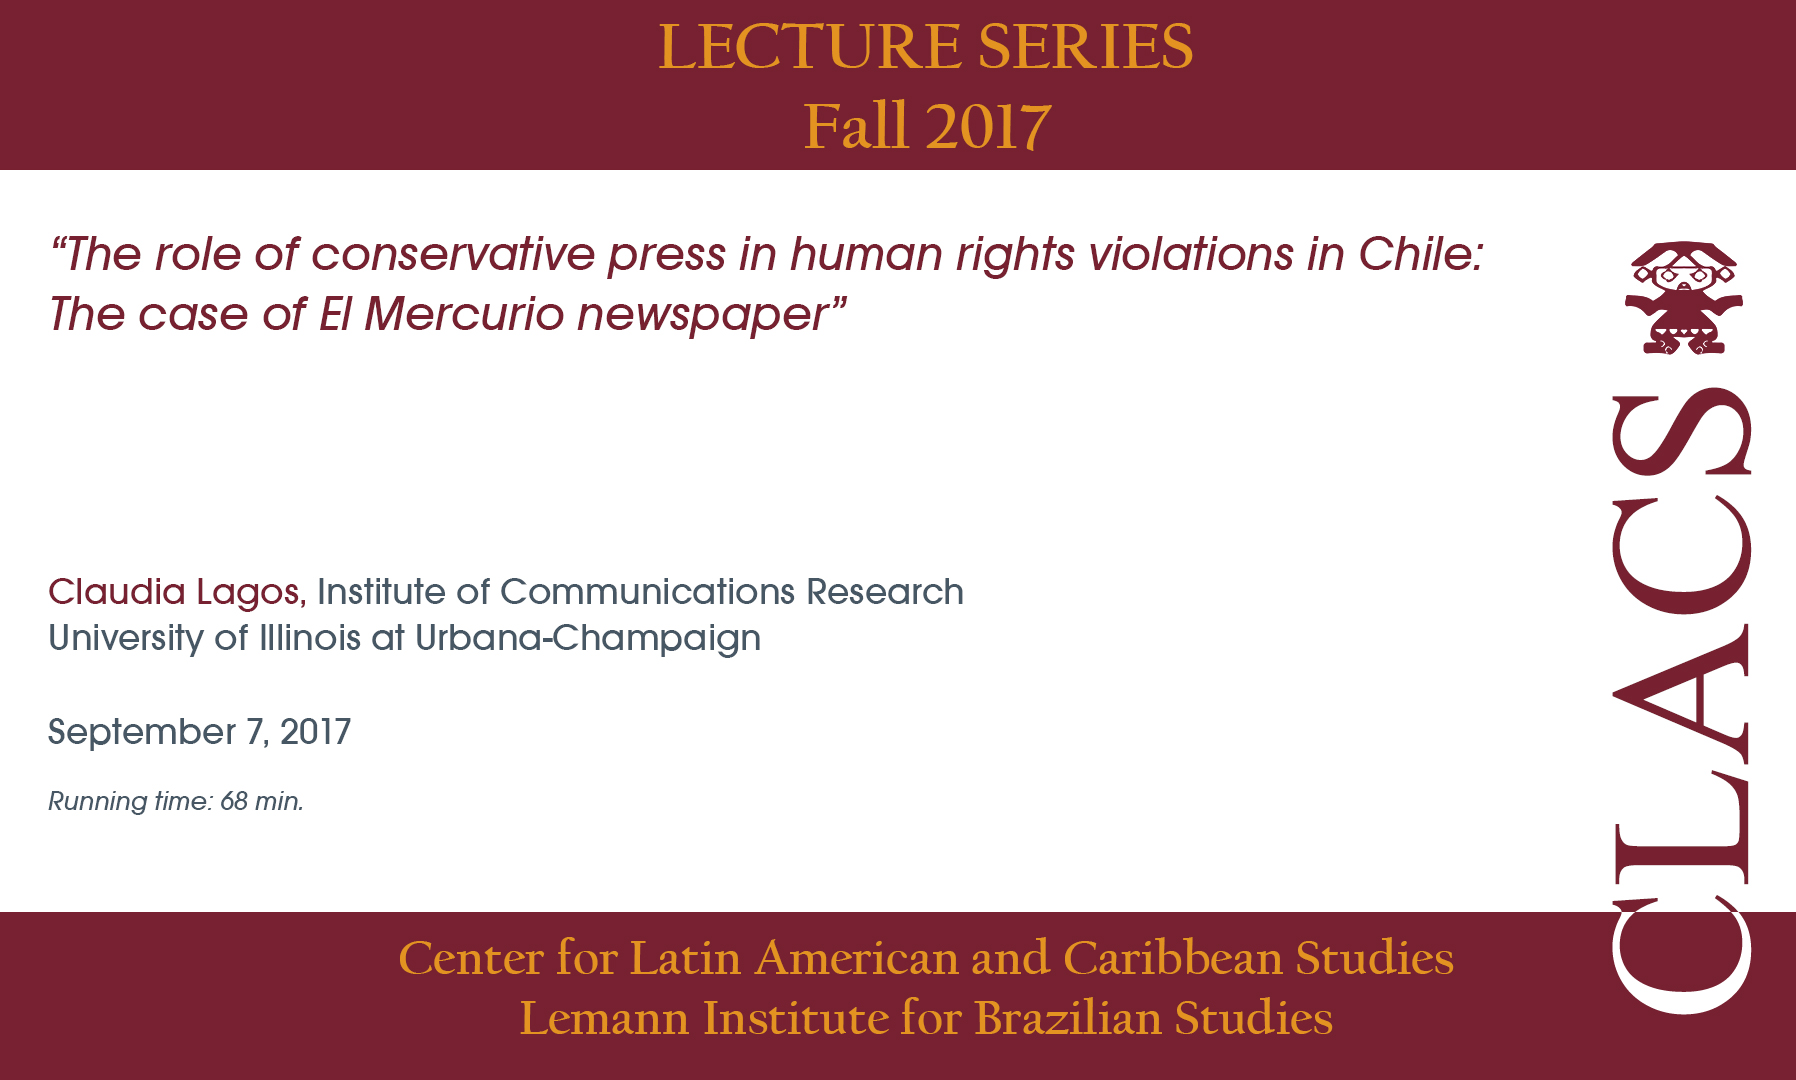 The role of conservative press in human rights violations in Chile: The case of El Mercurio newspaper